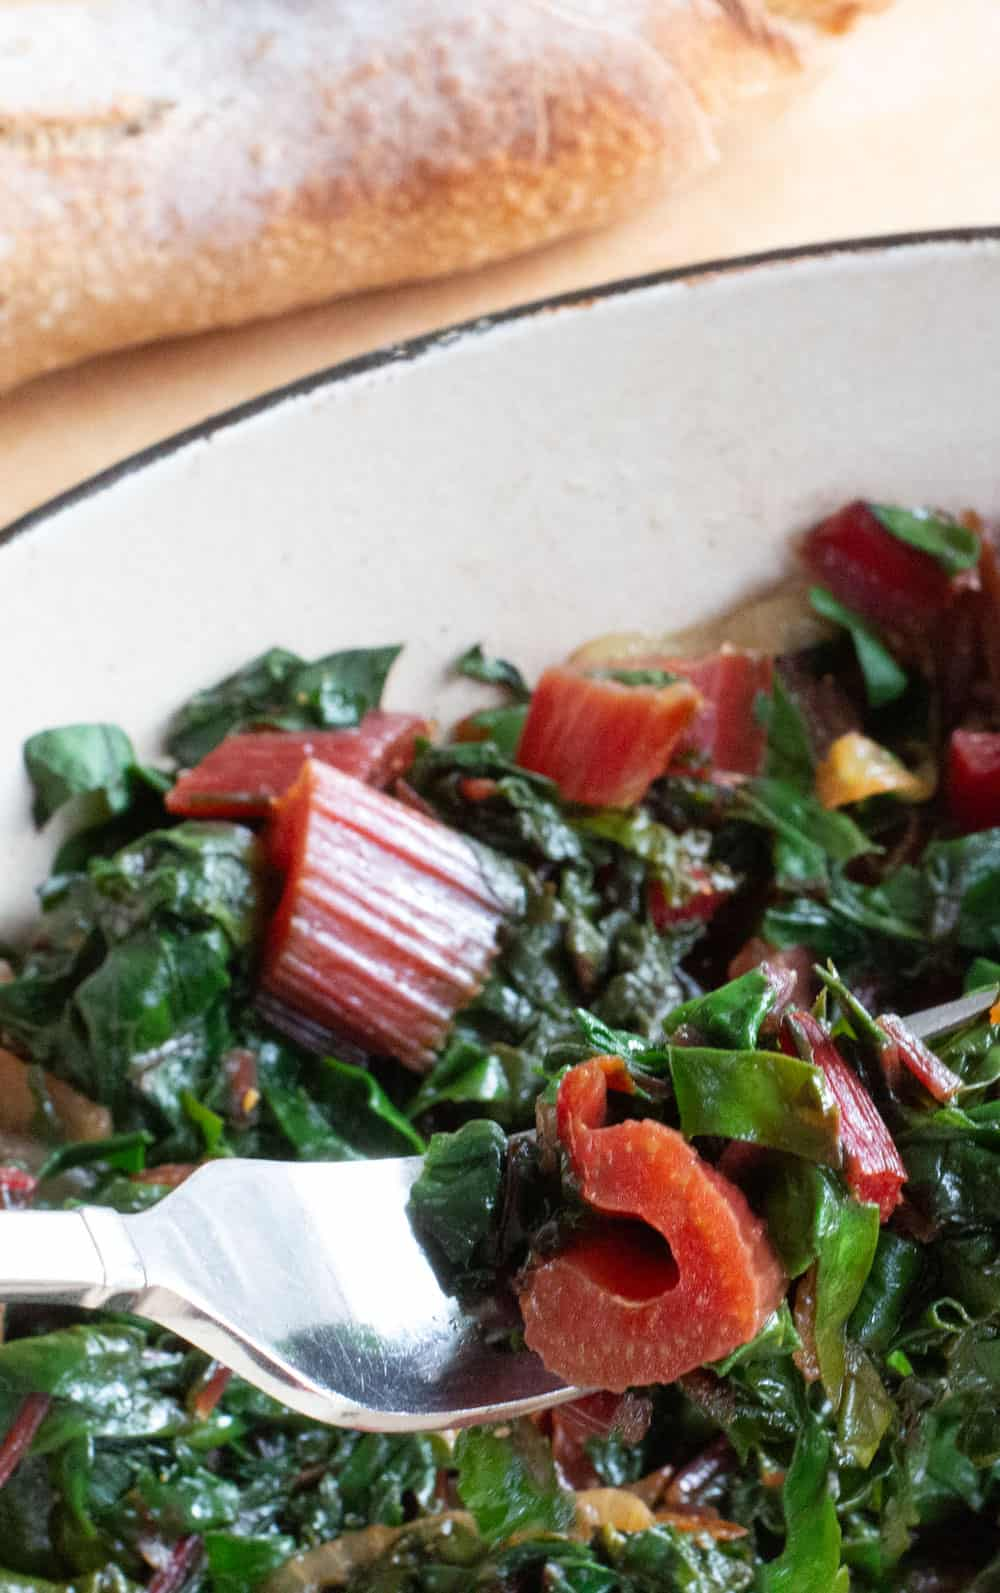 Swiss chard finished cooking with baguette in background